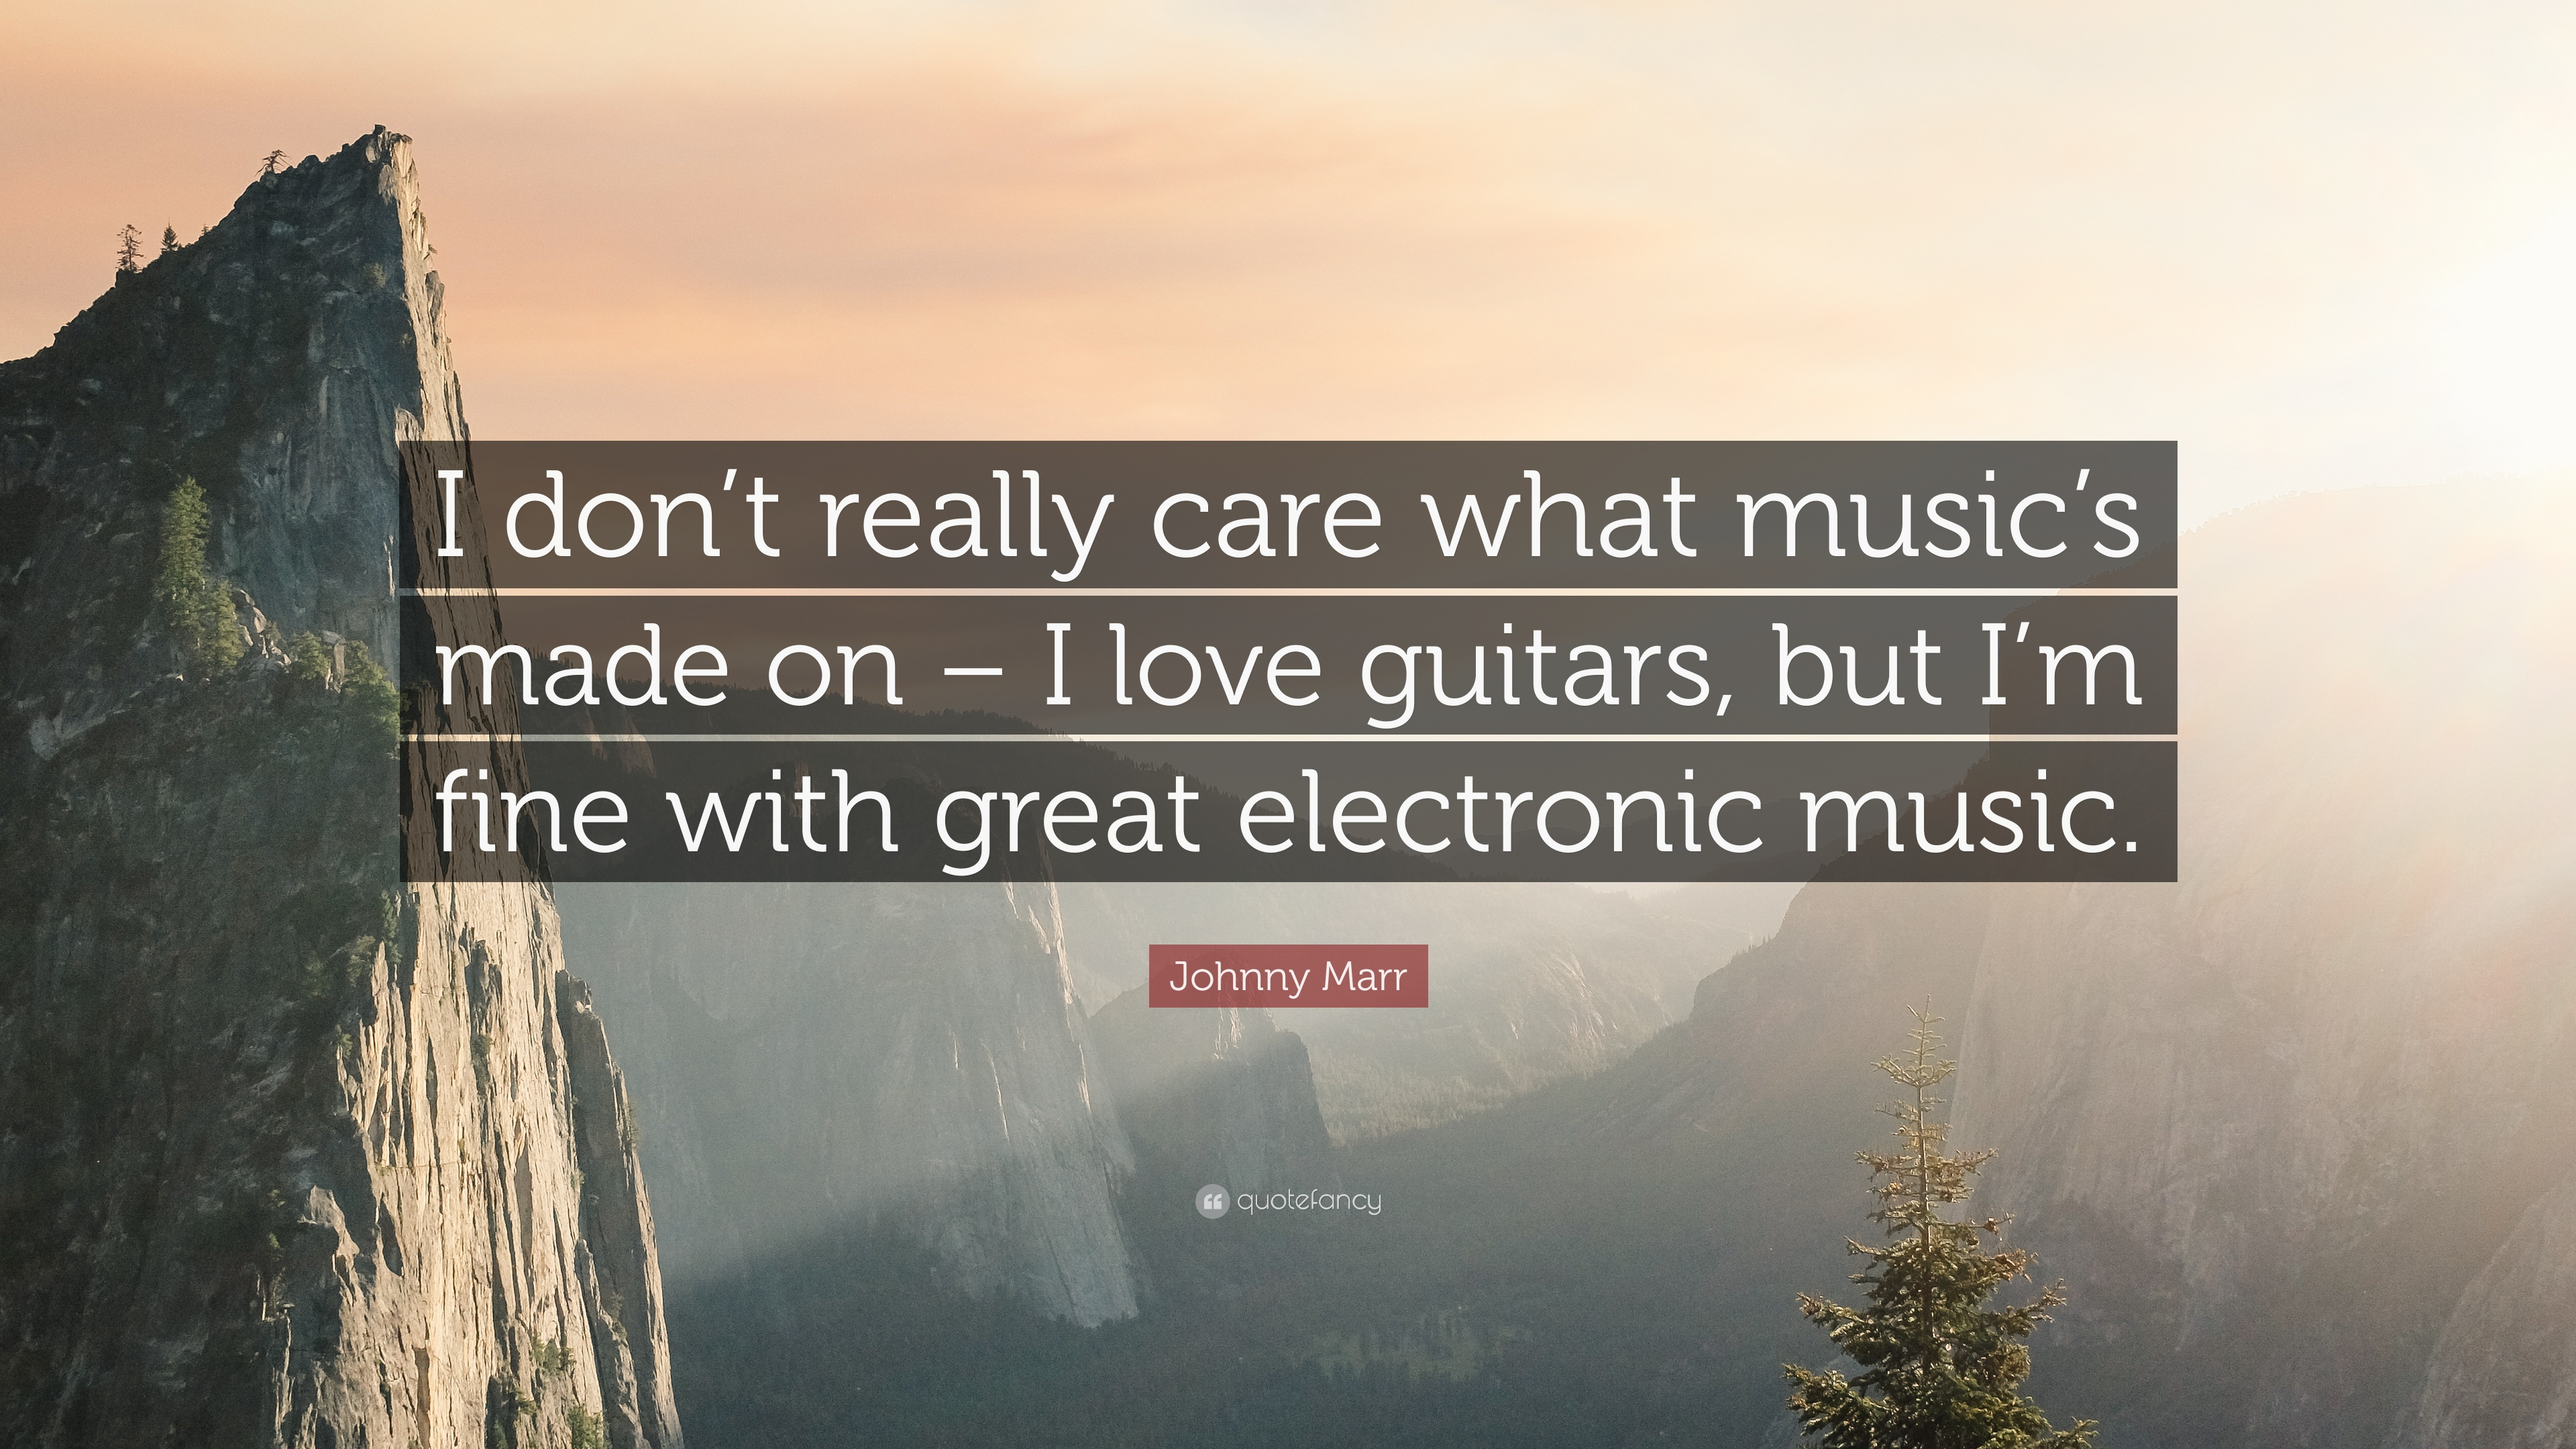 johnny marr quotes quotefancy johnny marr quote i don t really care what music s made on